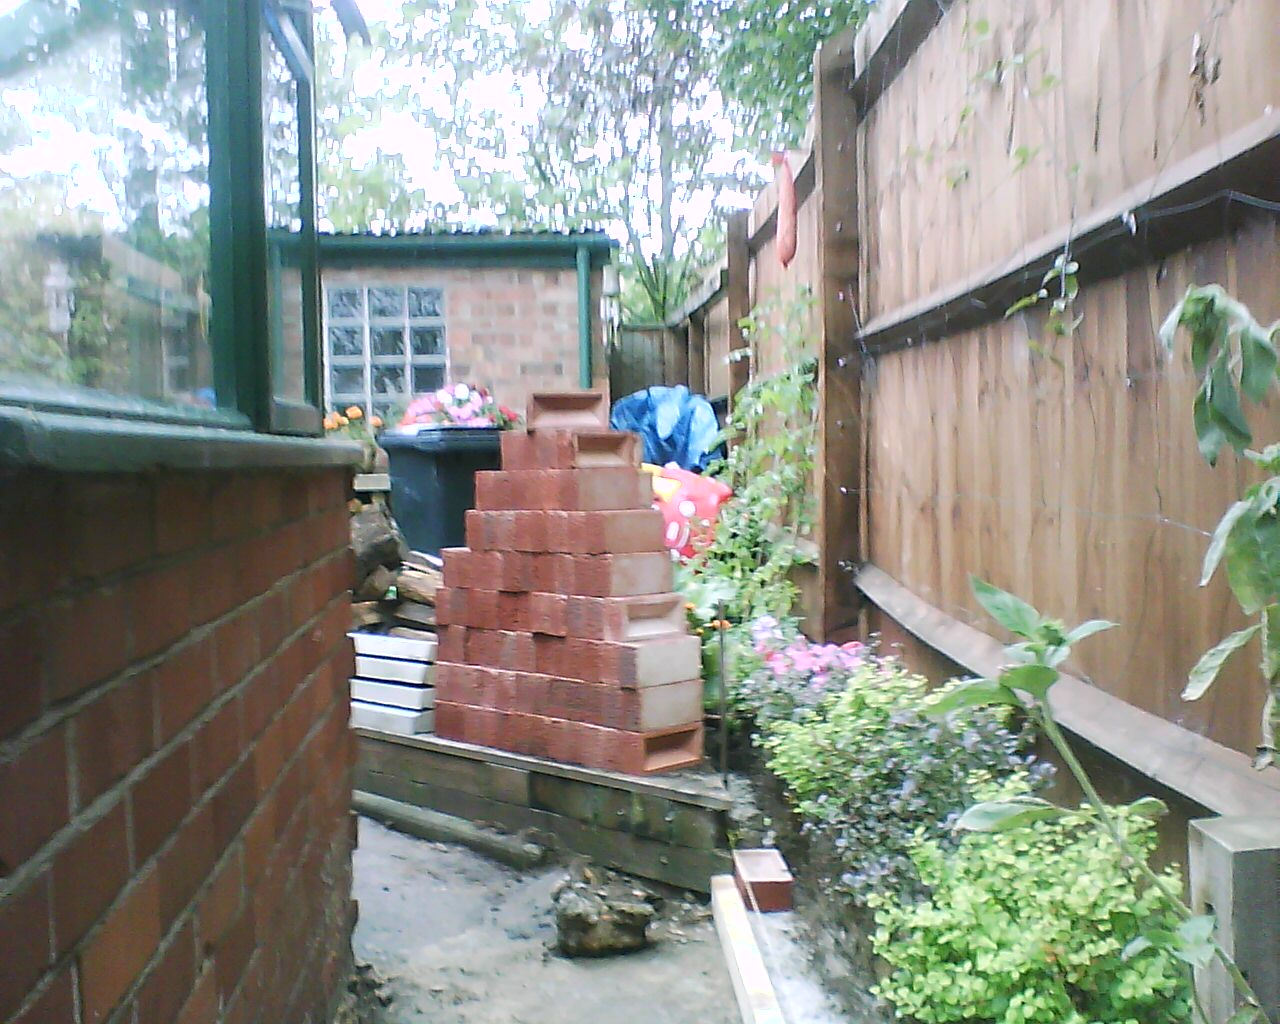 Bespoke home solutions how to build a brick wall part 1 - How to build a cheap house handy solutions ...